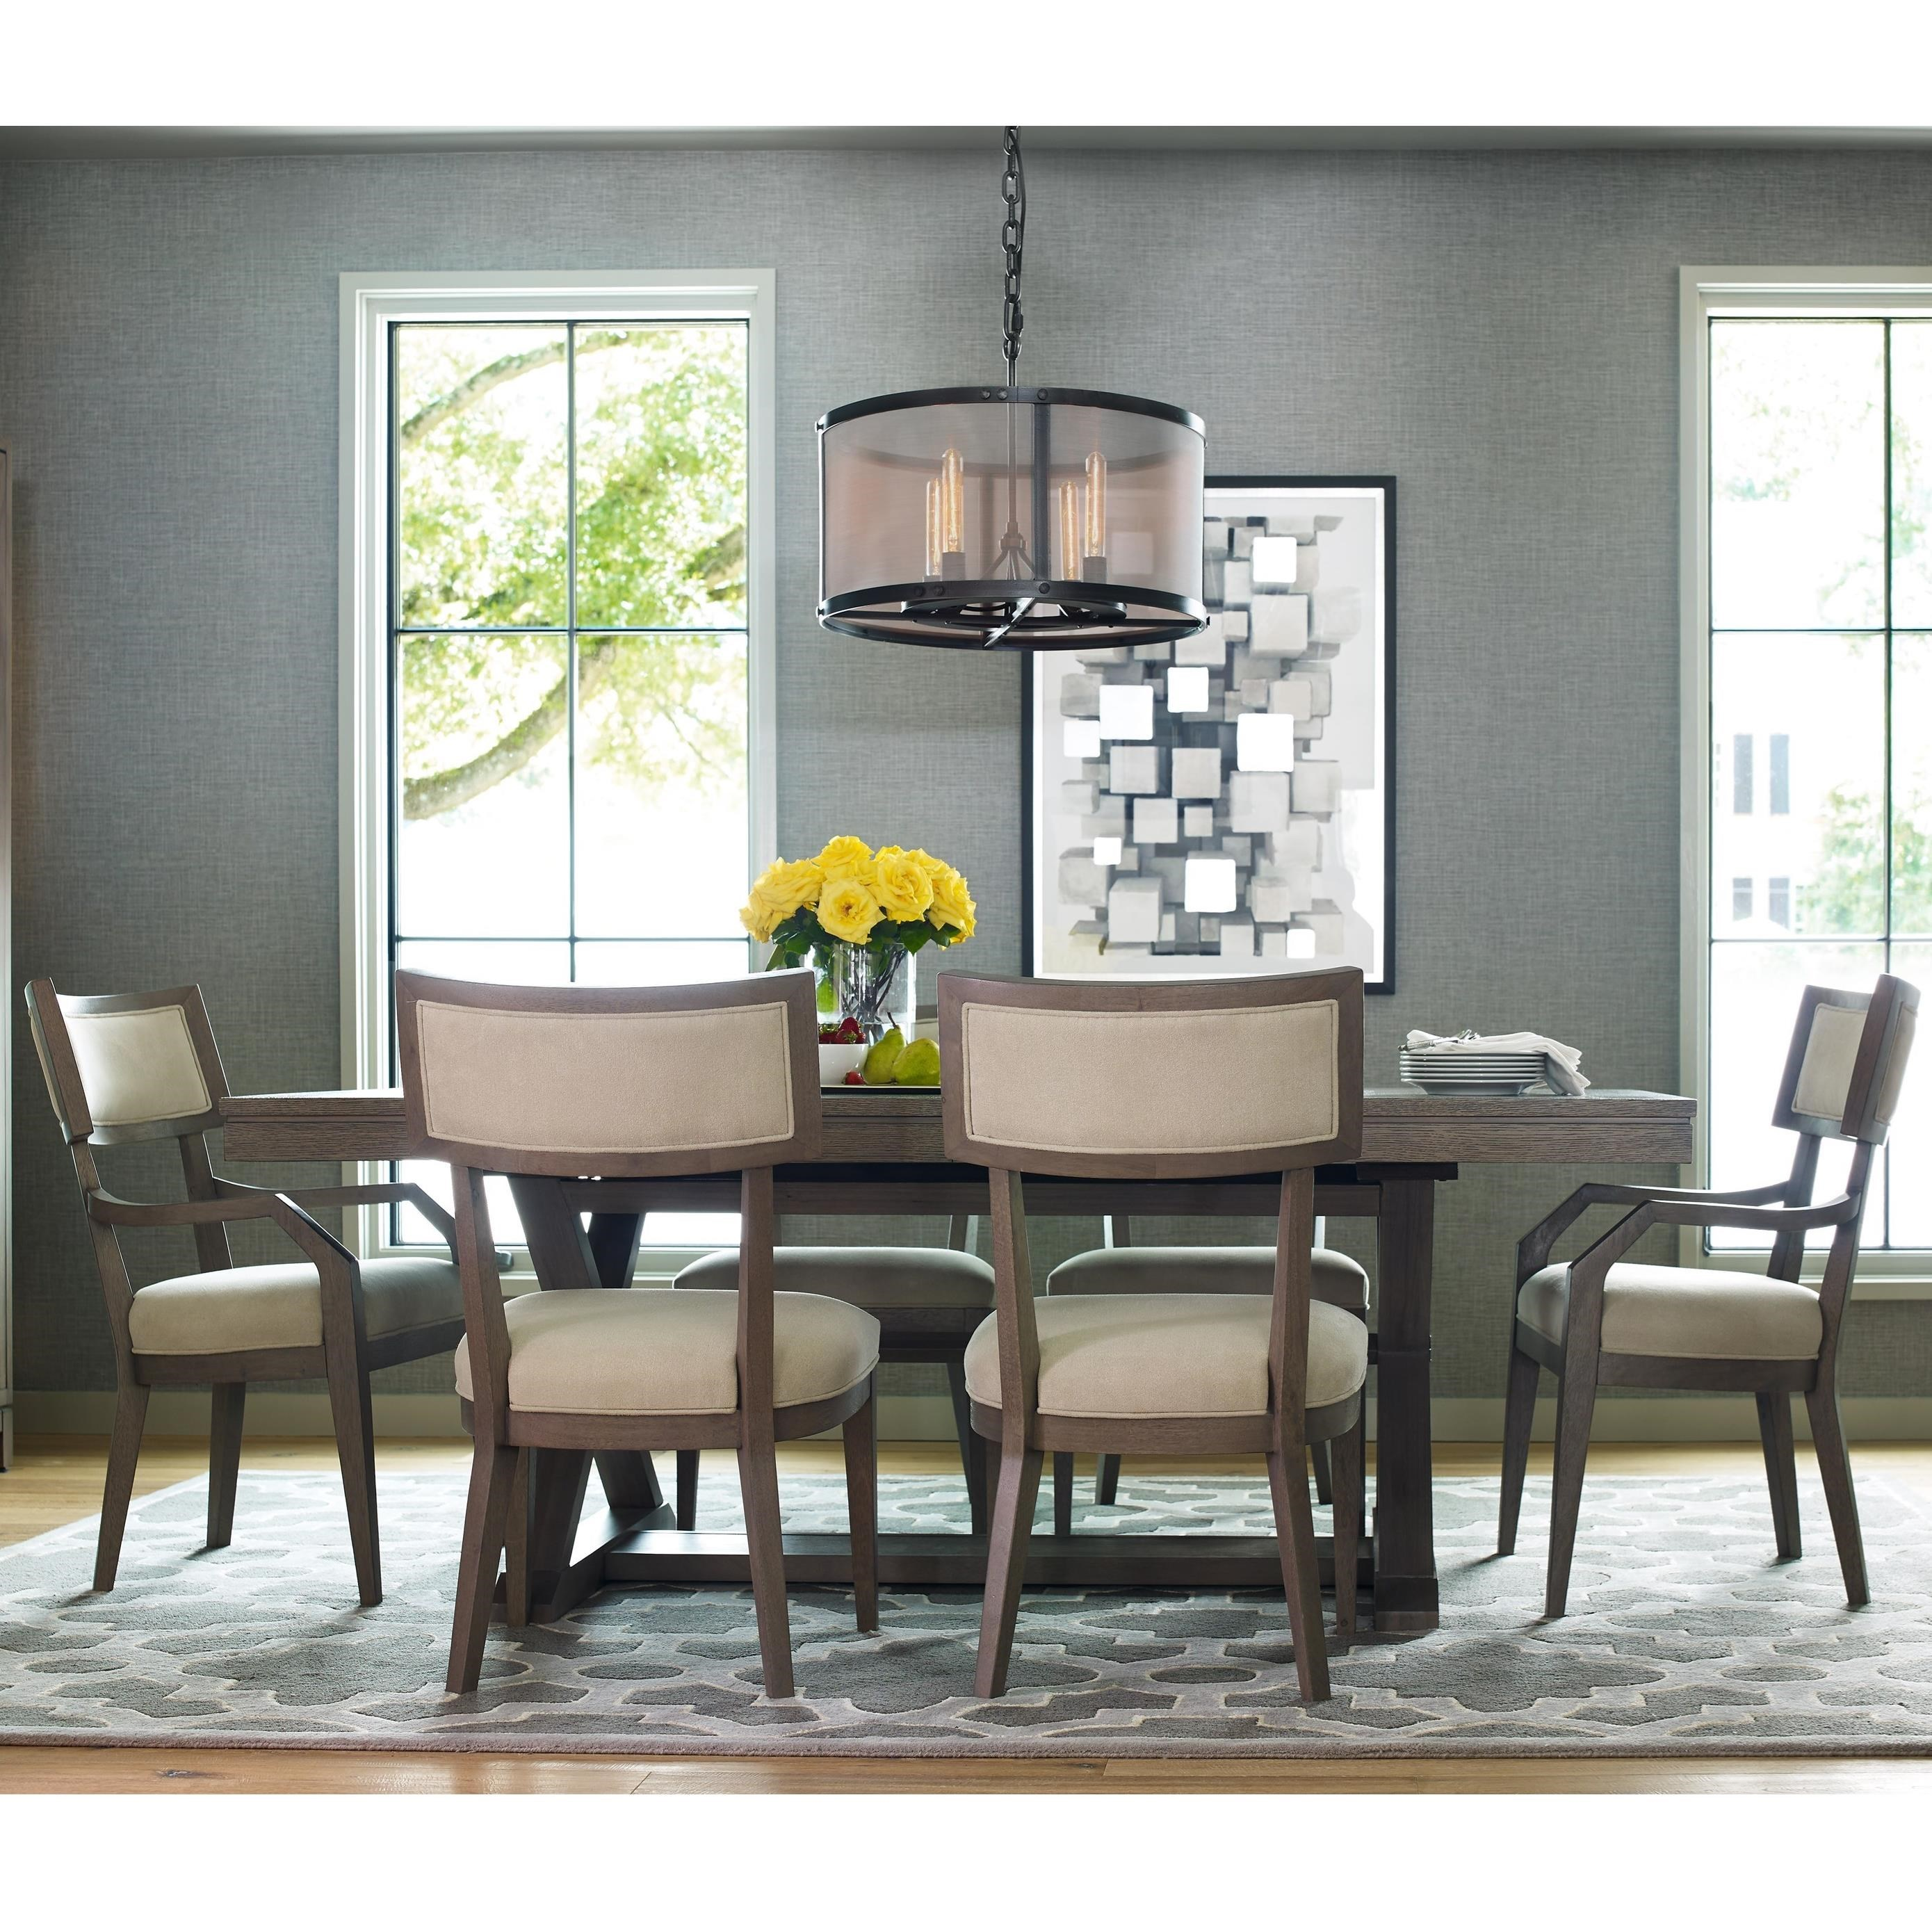 7 Piece Dining Set with Trestle Table